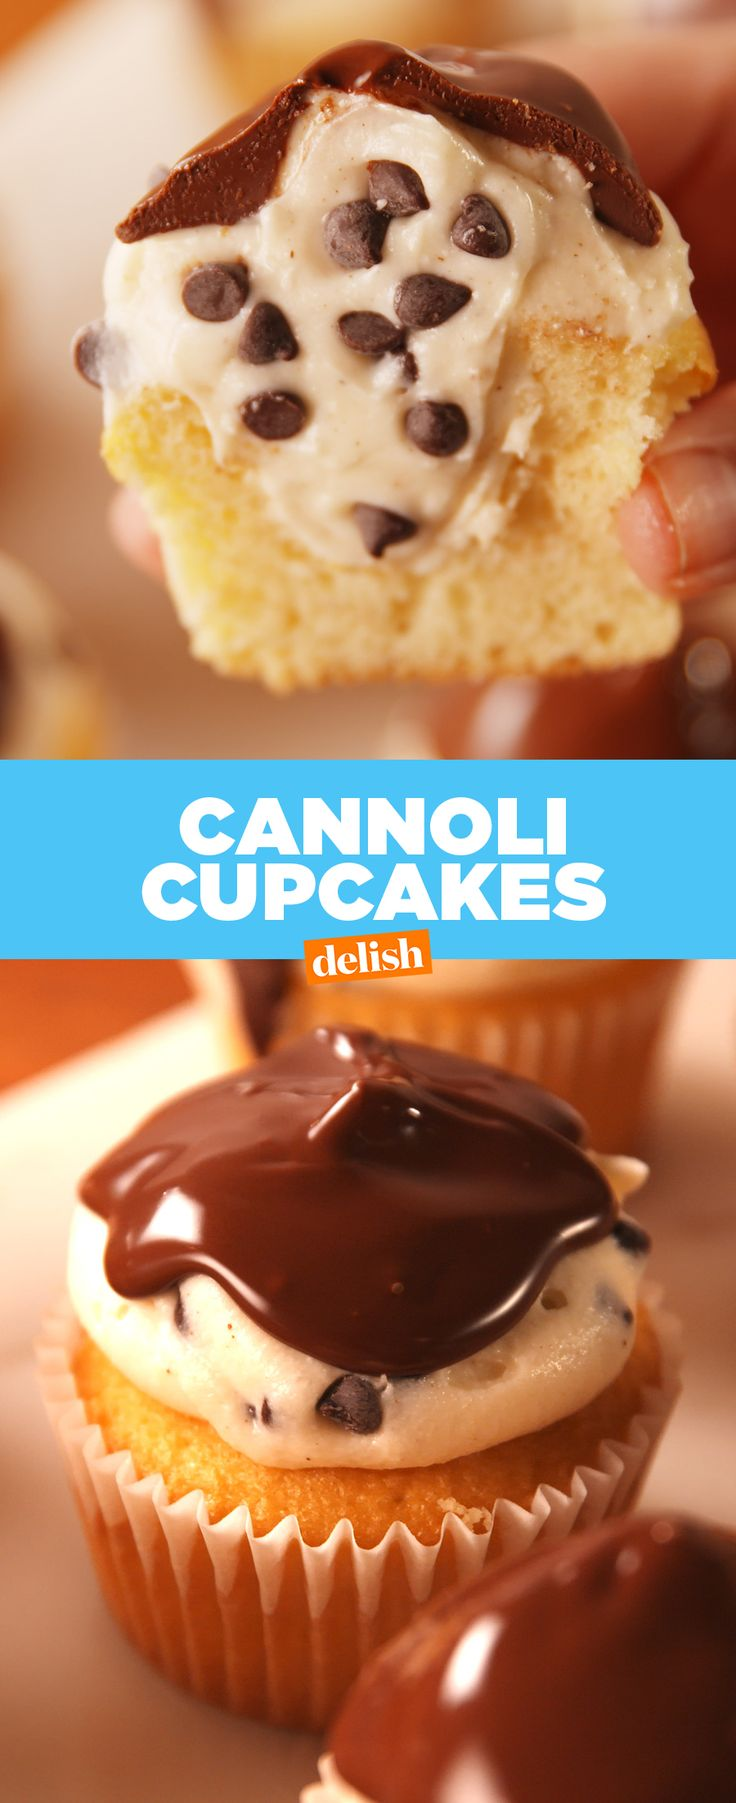 The inside of these cupcakes will give you SO MANY FEELINGS. Get the recipe from Delish.com.